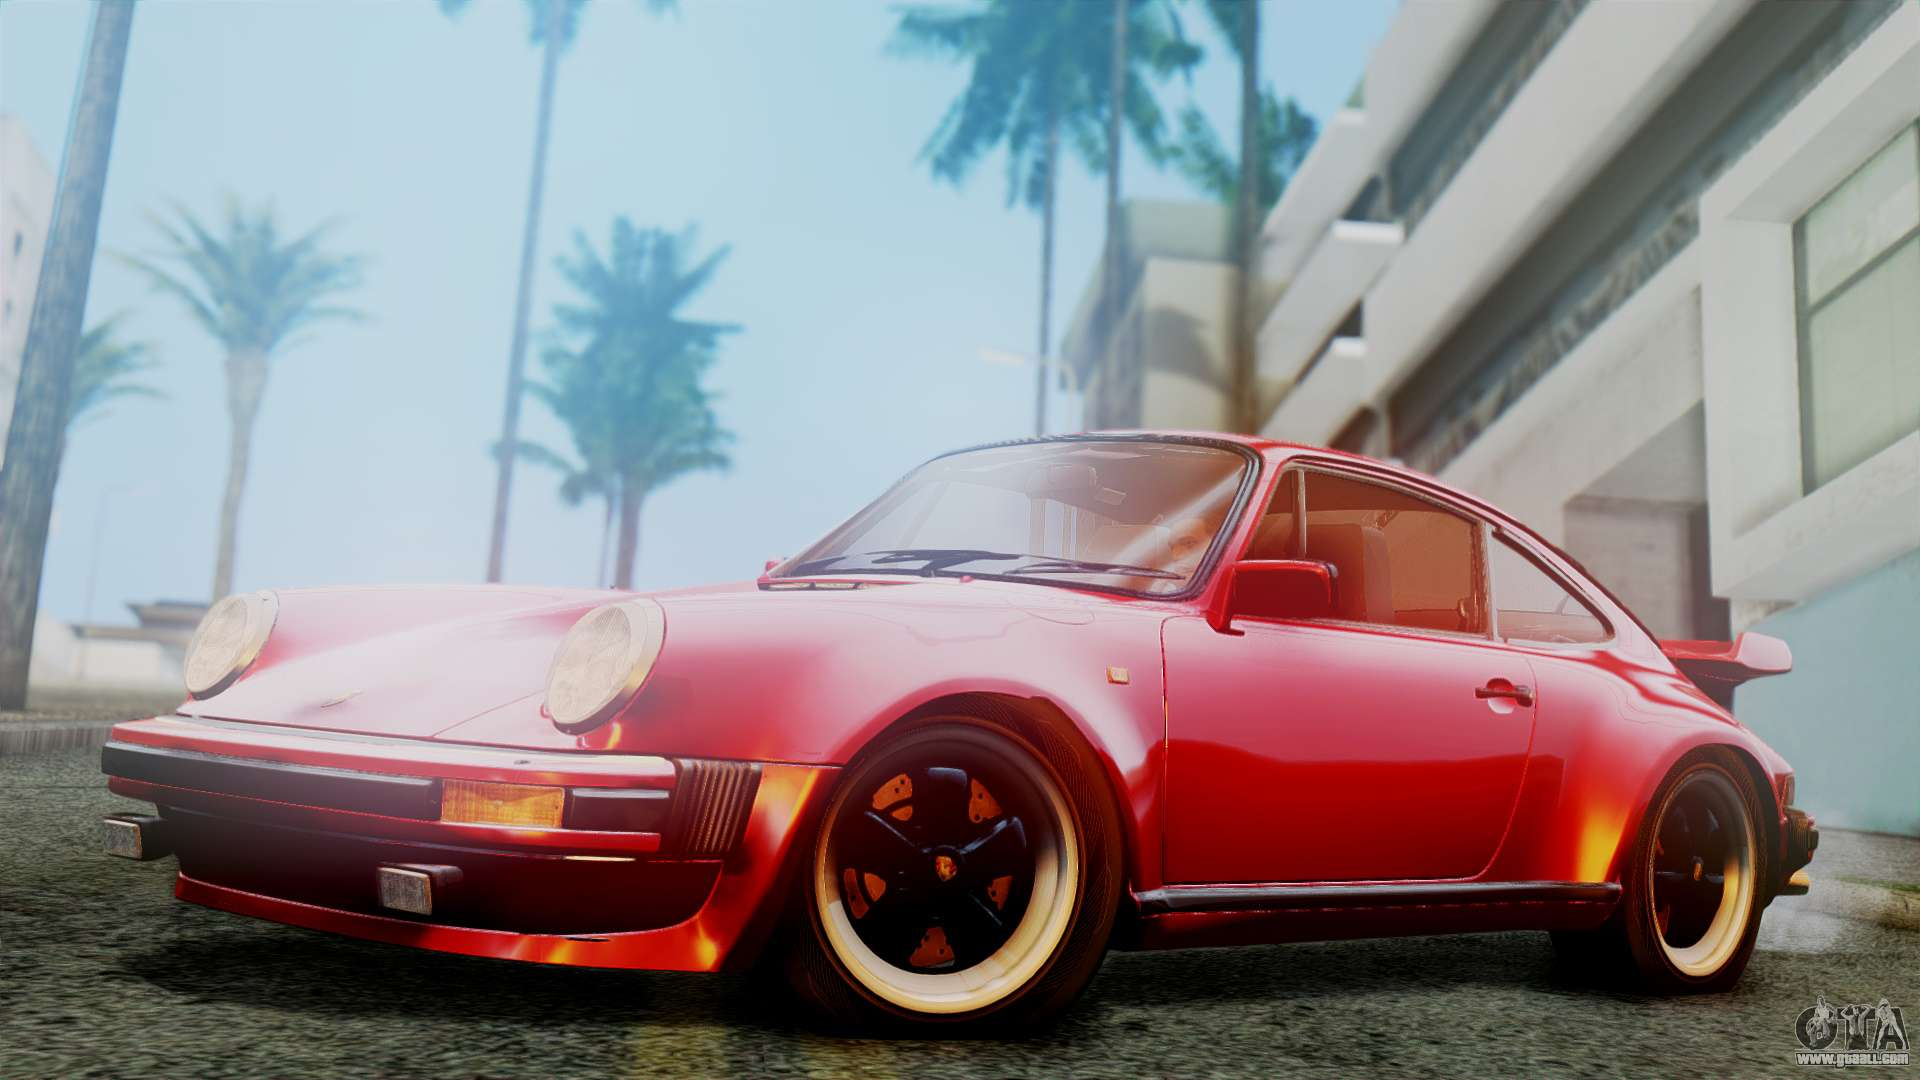 Porsche 911 turbo 930 1985 kit a for gta san andreas porsche 911 turbo 930 1985 kit a for gta san andreas left view vanachro Image collections